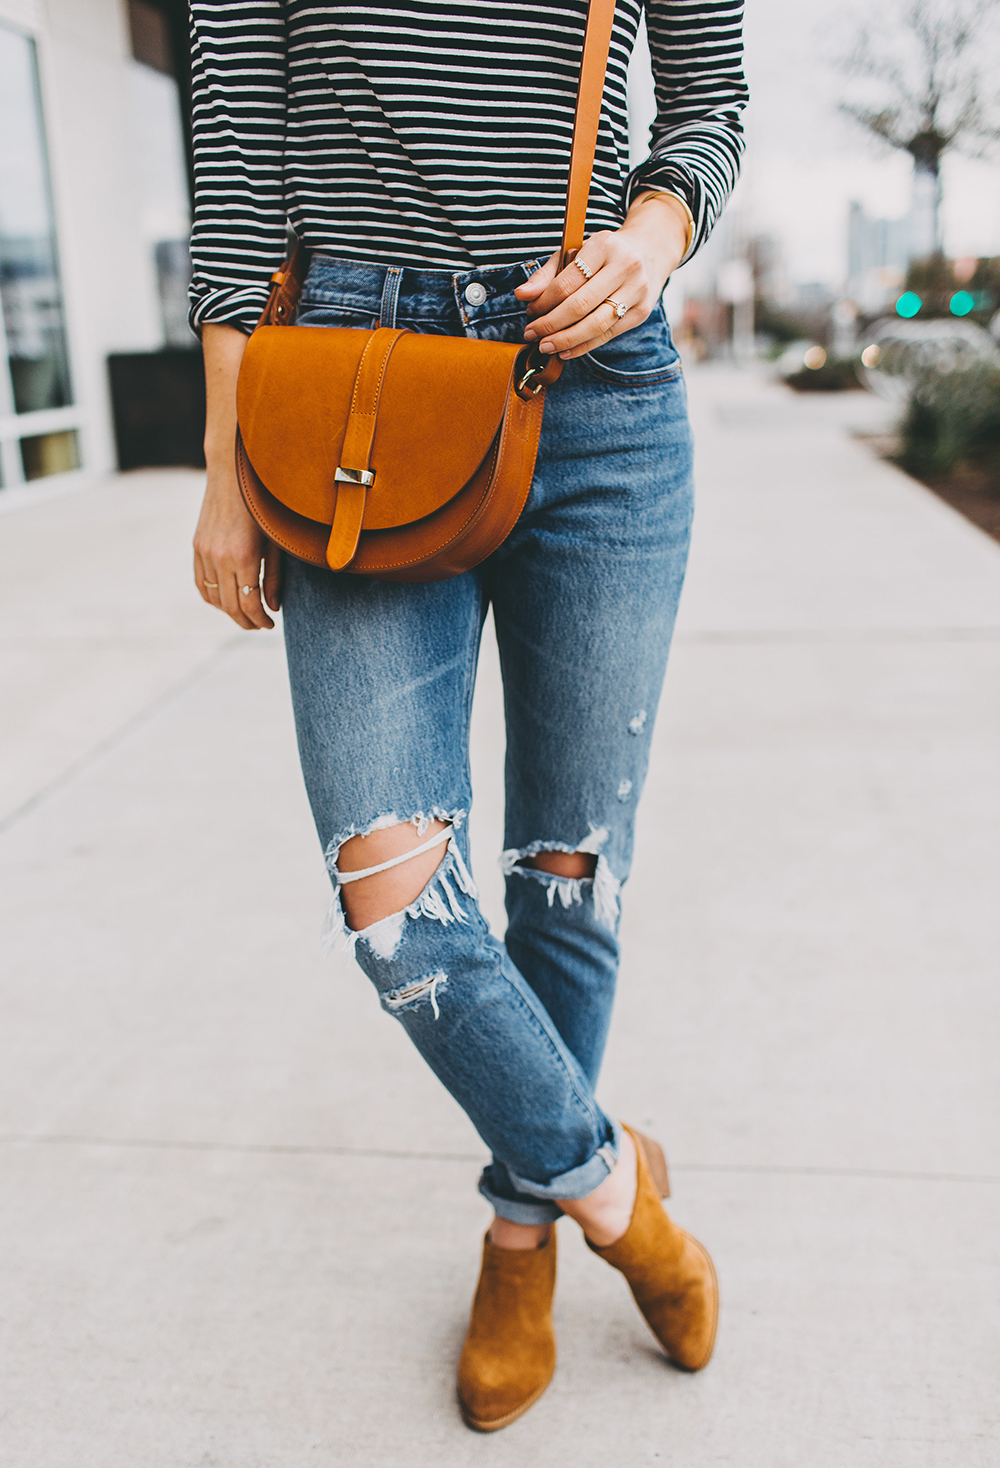 livvyland-blog-olivia-watson-austin-texas-fashion-blogger-j-crew-striped-turtleneck-outfit-idea-inspiration-sezane-handbag